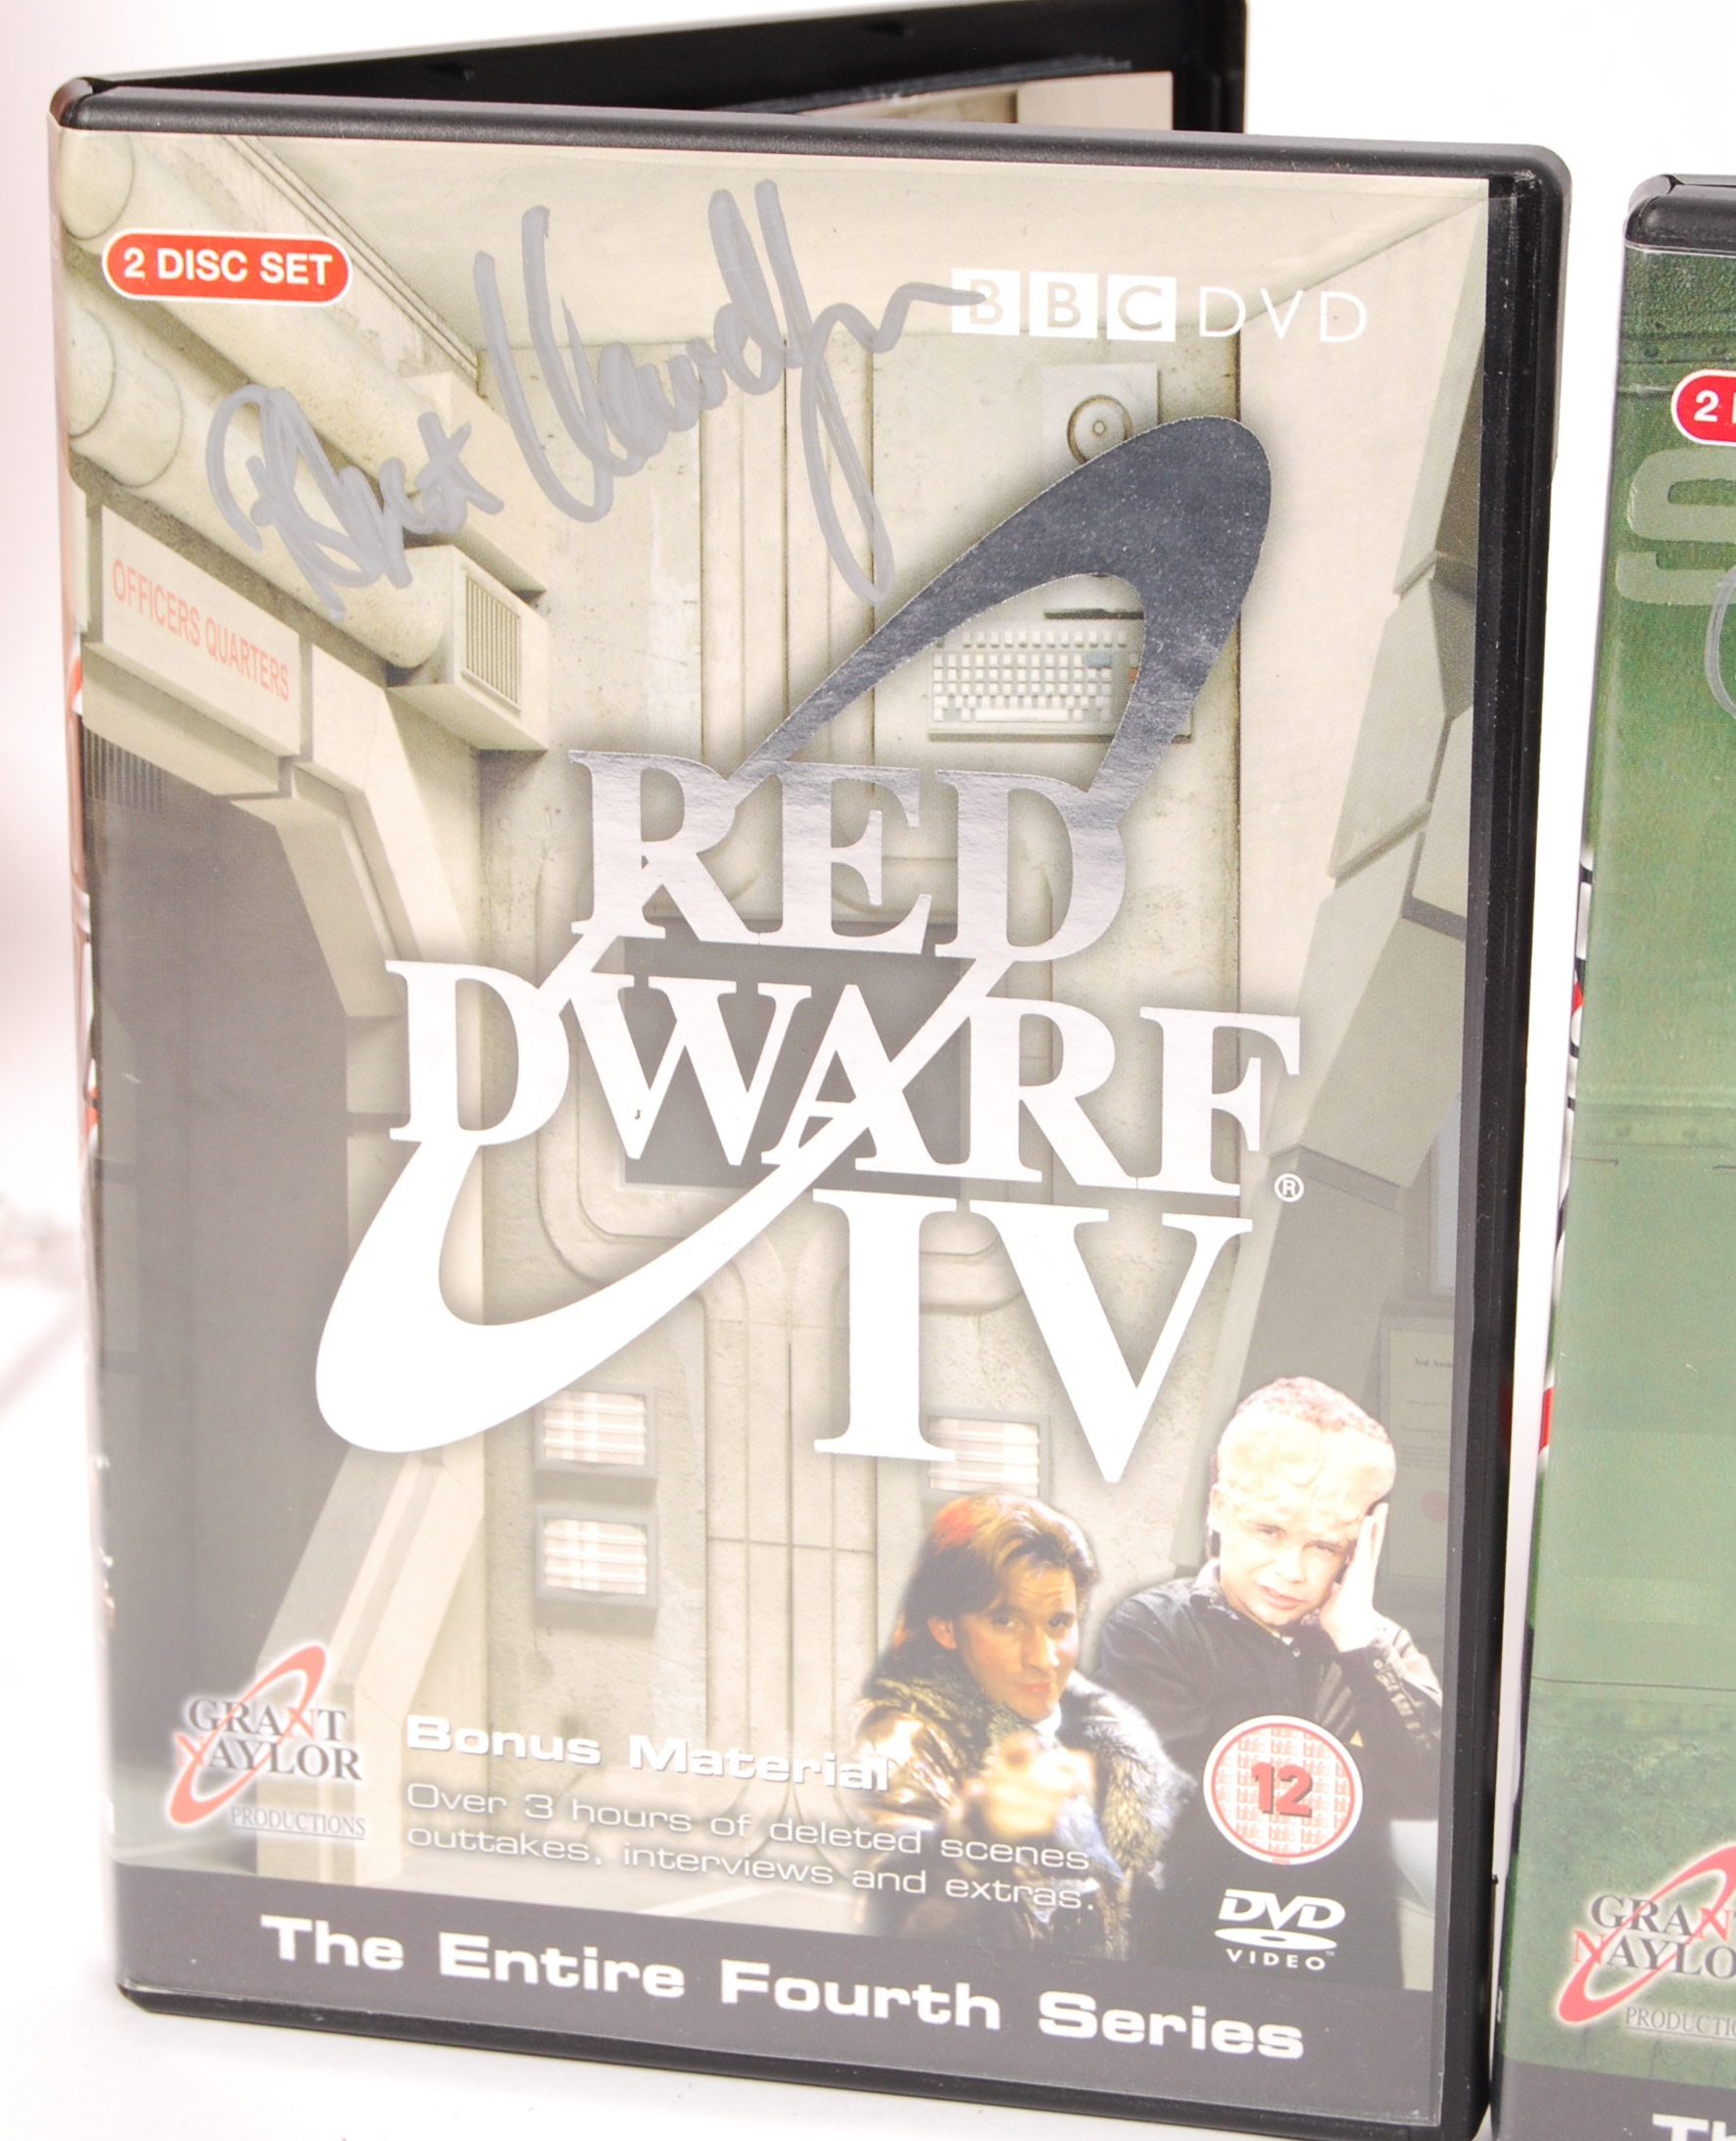 RED DWARF SERIES 1-4 AUTOGRAPHED DVD COLLECTION - Image 4 of 5